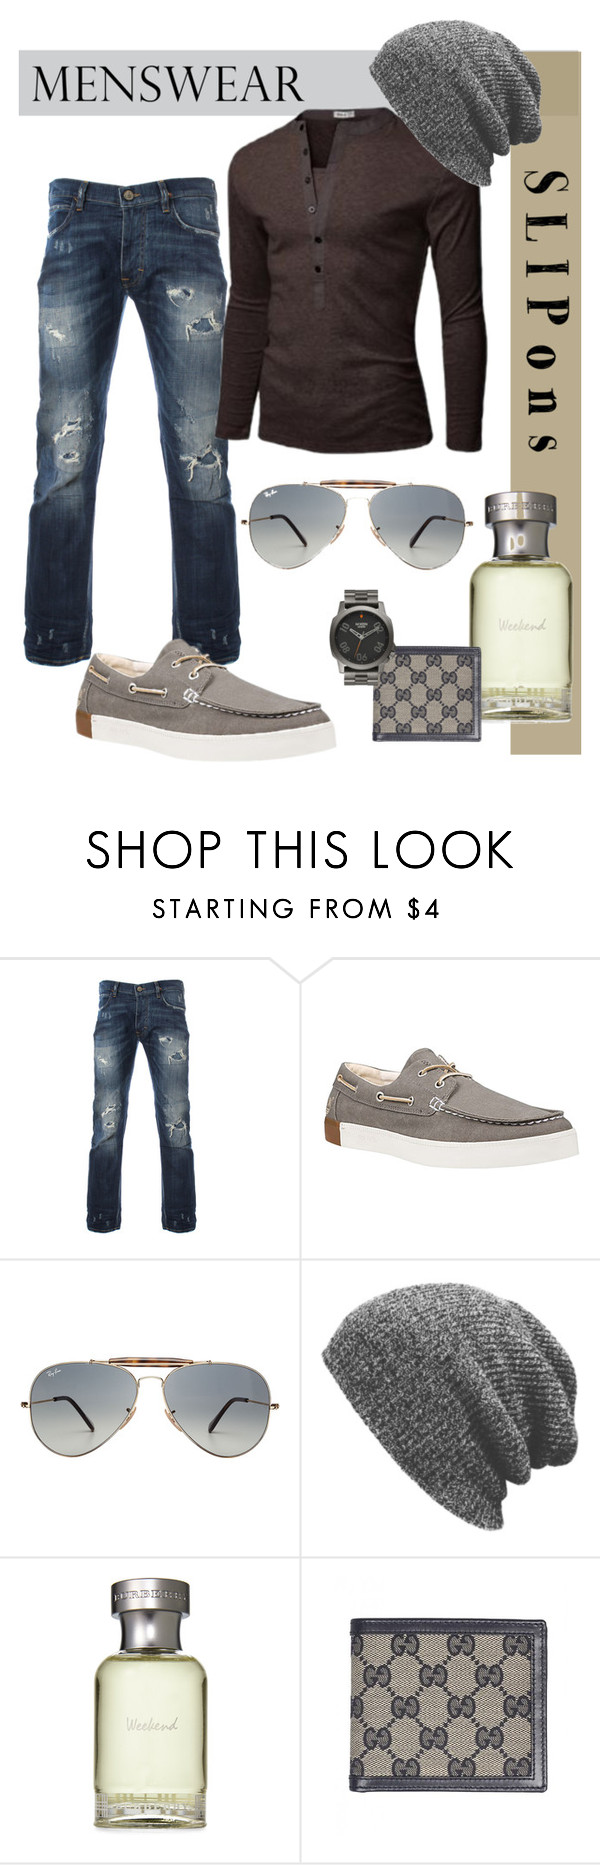 """""""Boat Shoes"""" by tinky3buggs ❤ liked on Polyvore featuring Timberland, LE3NO, Ray-Ban, Burberry, Gucci, Nixon, men's fashion, menswear and slipons"""